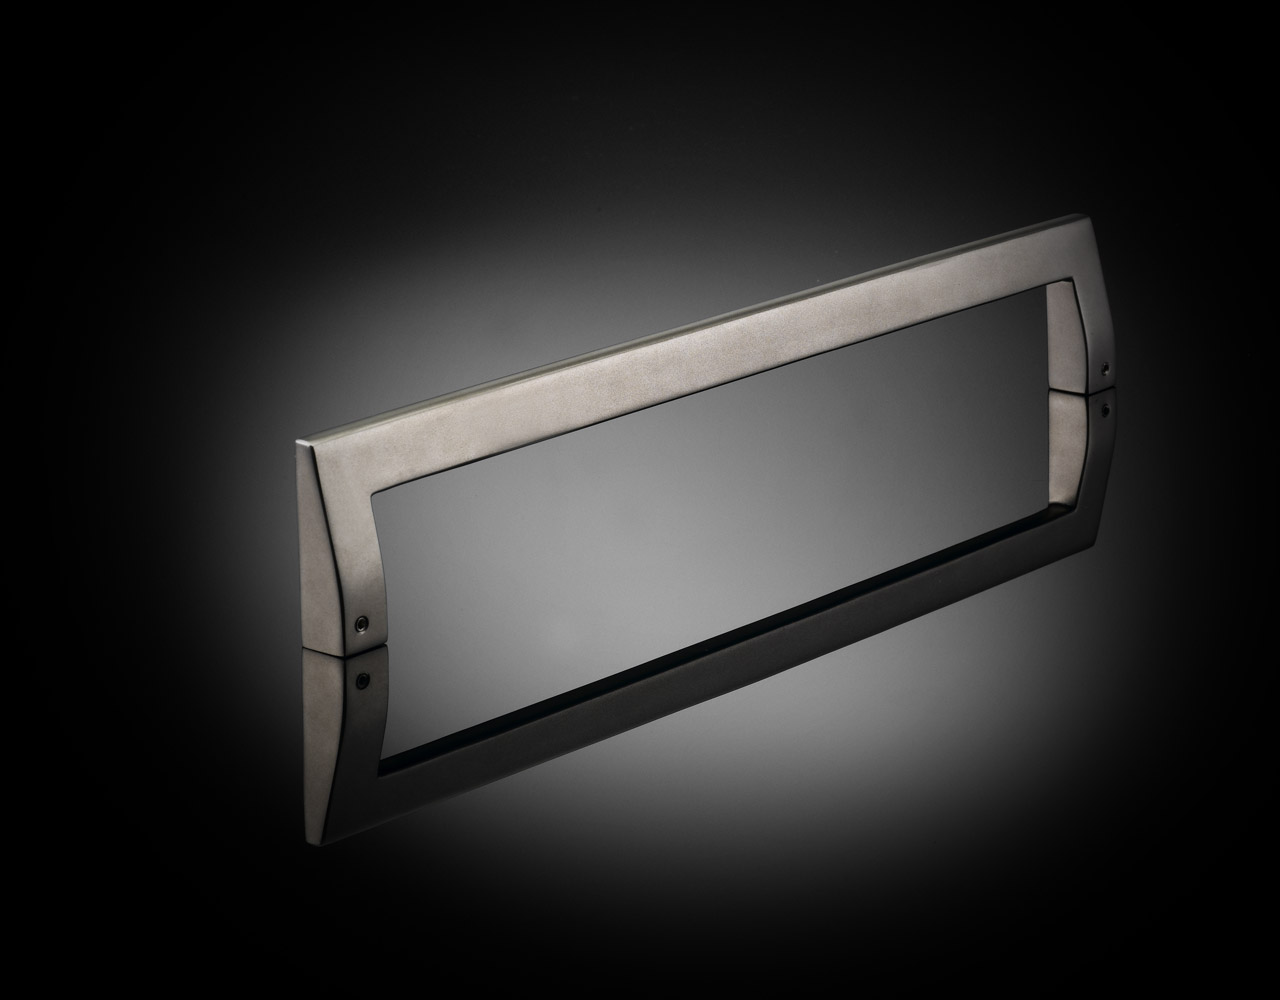 IRP01 bespoke pull handle from Ian Ritchie supplied by izé in Satin Nickel finish